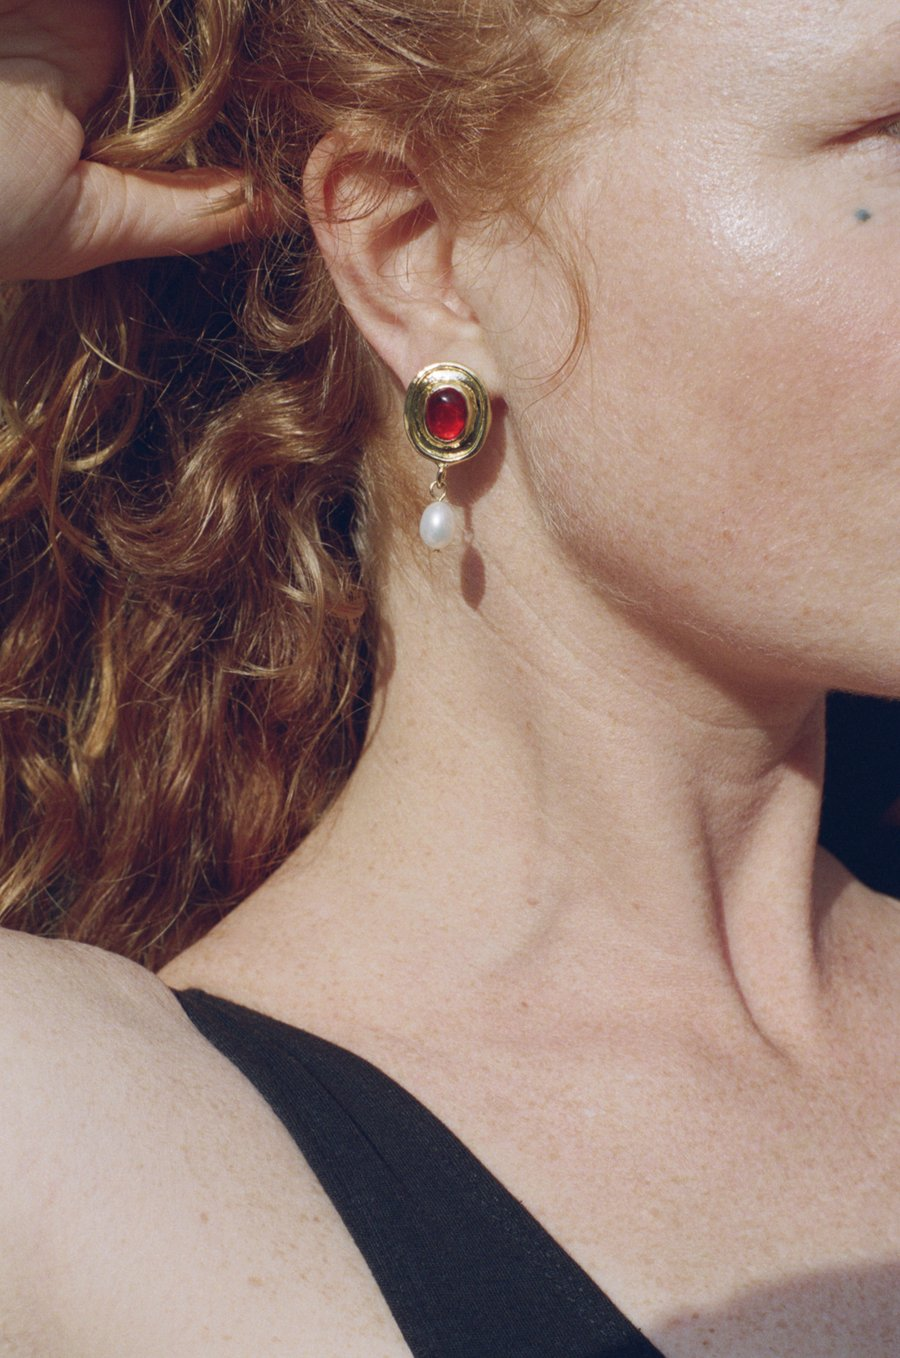 Viva Earrings - $260For those days when your outfit needs a glamorous boost.